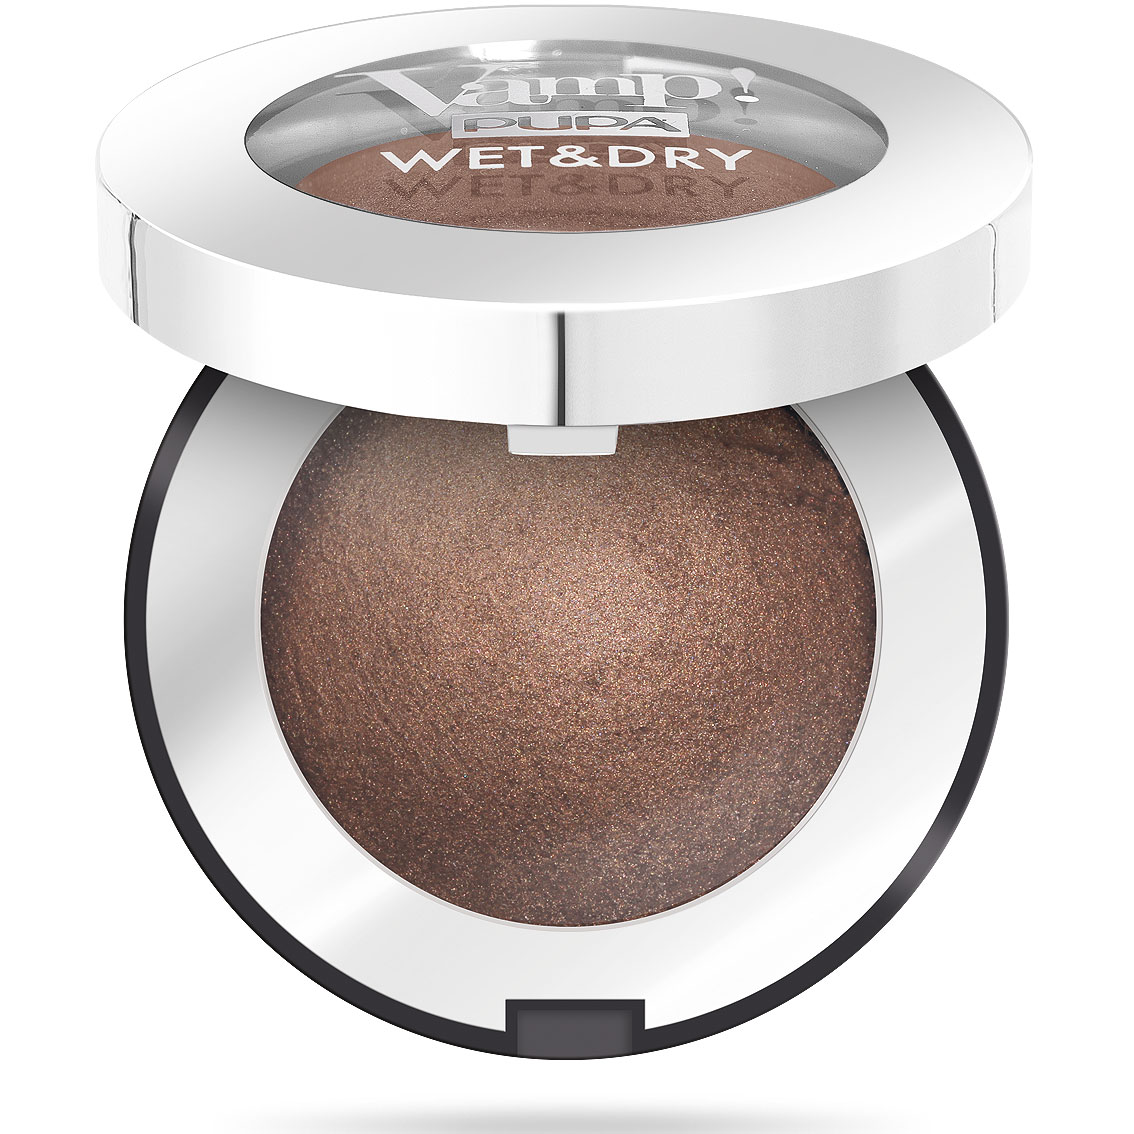 Pupa Vamp! Wet & Dry Ombretto n. 105 warm brown